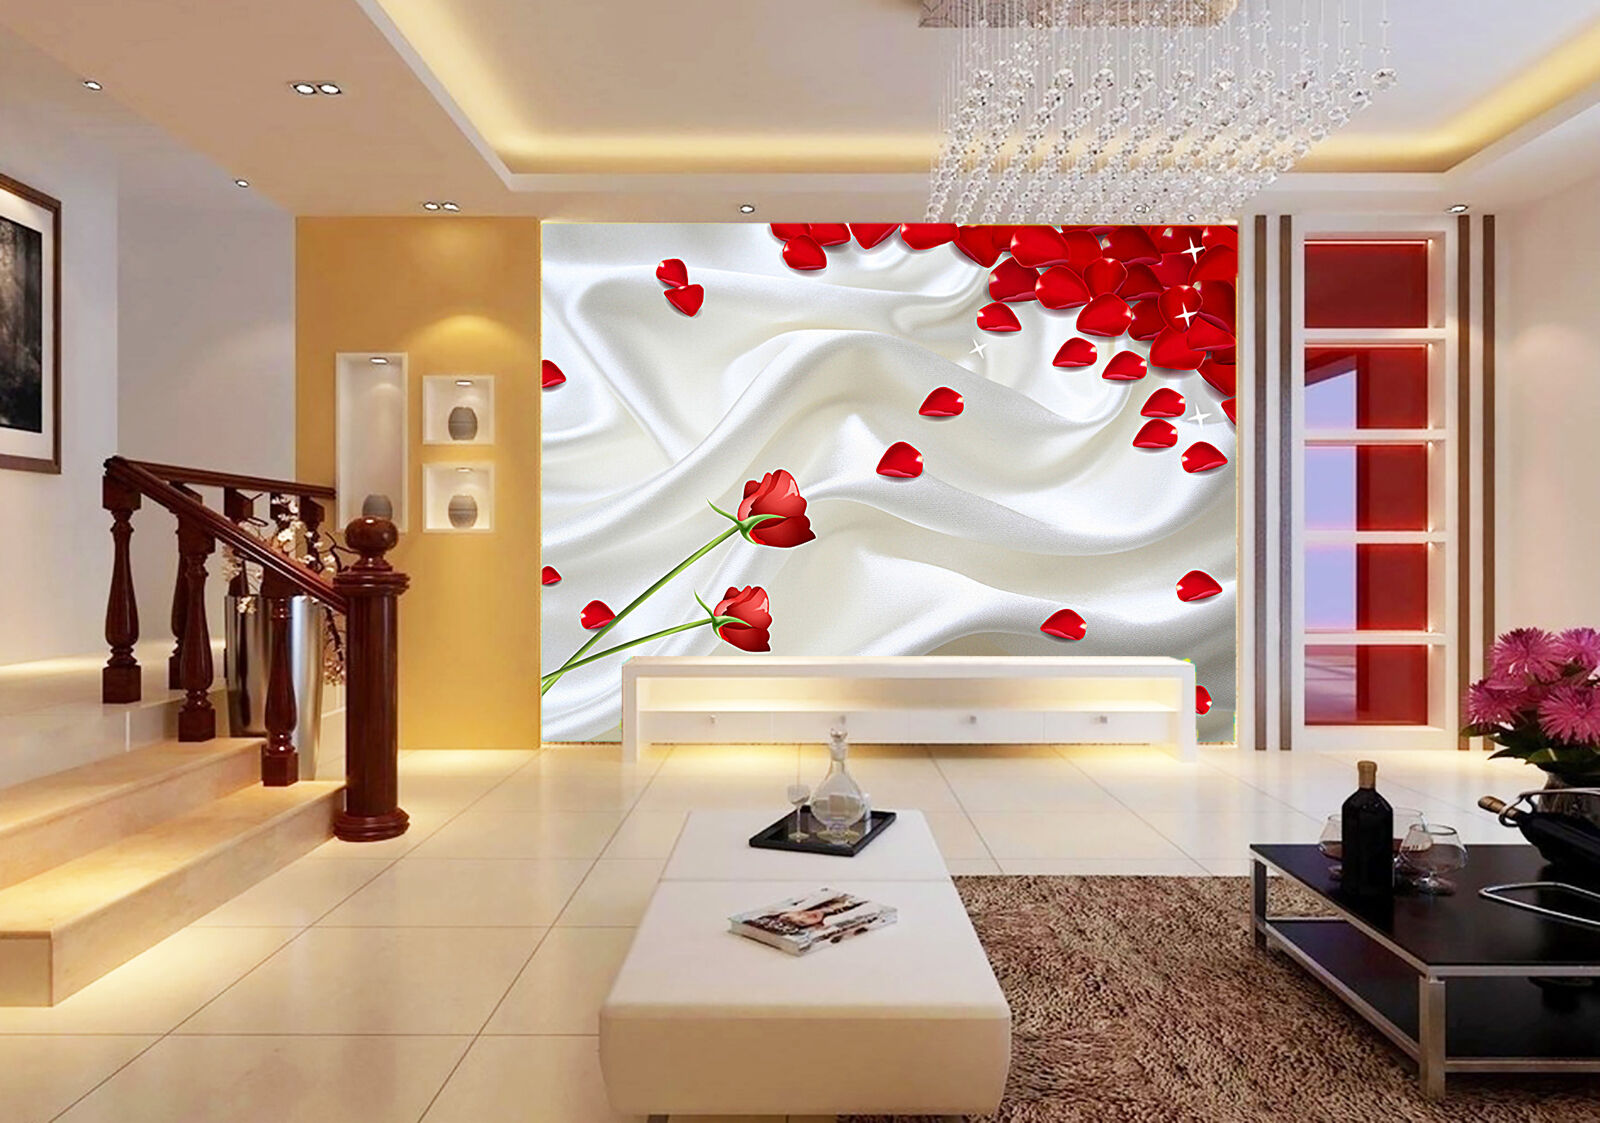 3D Shining Flowers Satin 75 Paper Wall Print Wall Decal Wall Deco Indoor Murals